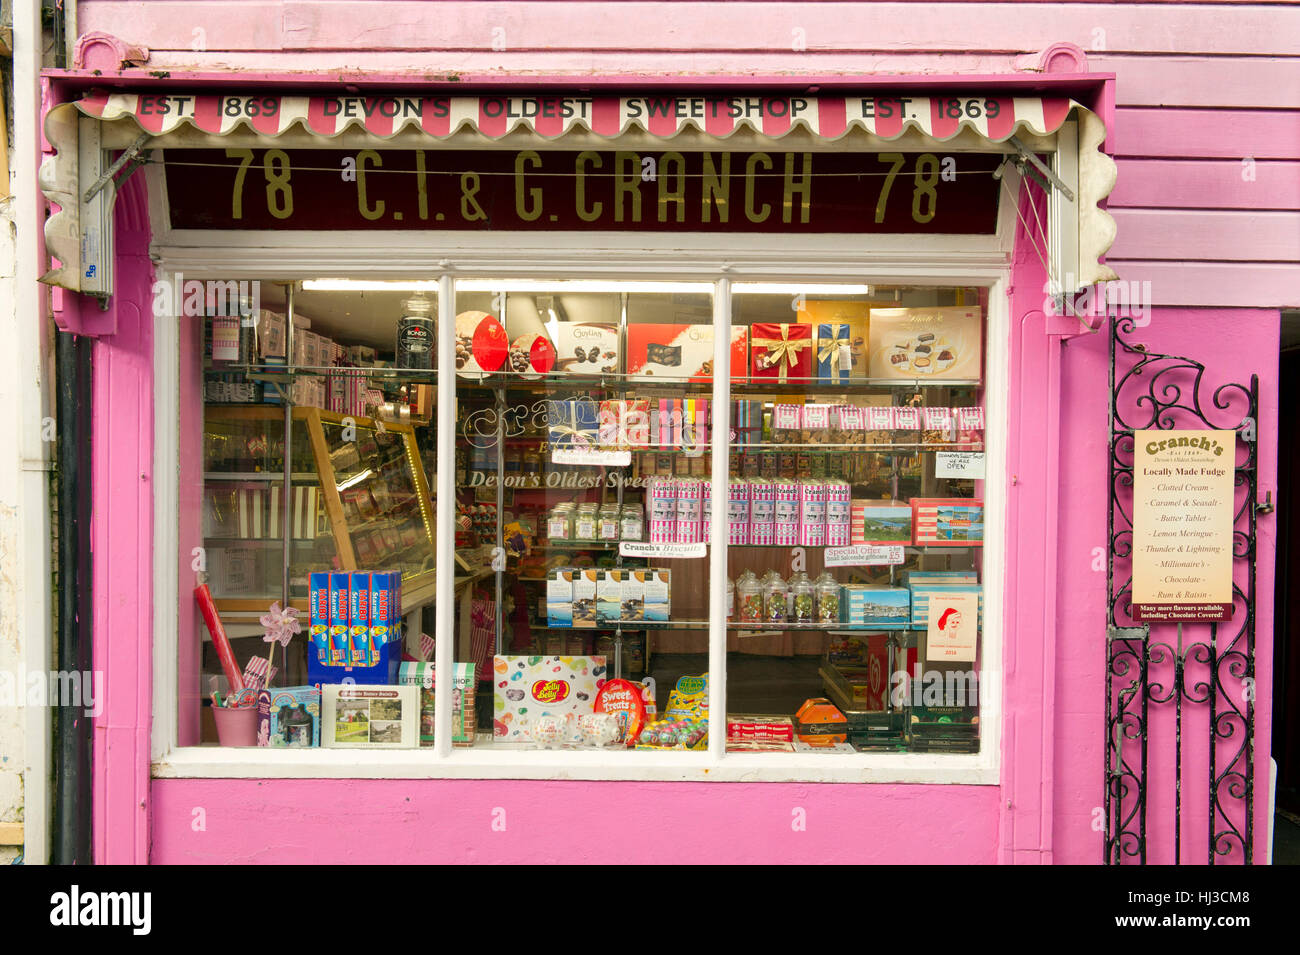 Cranch's Sweetshop,Salcombe,the oldest in Devonshire,with owners Angela Carter(glasses),Suzanne Harris and employee - Stock Image